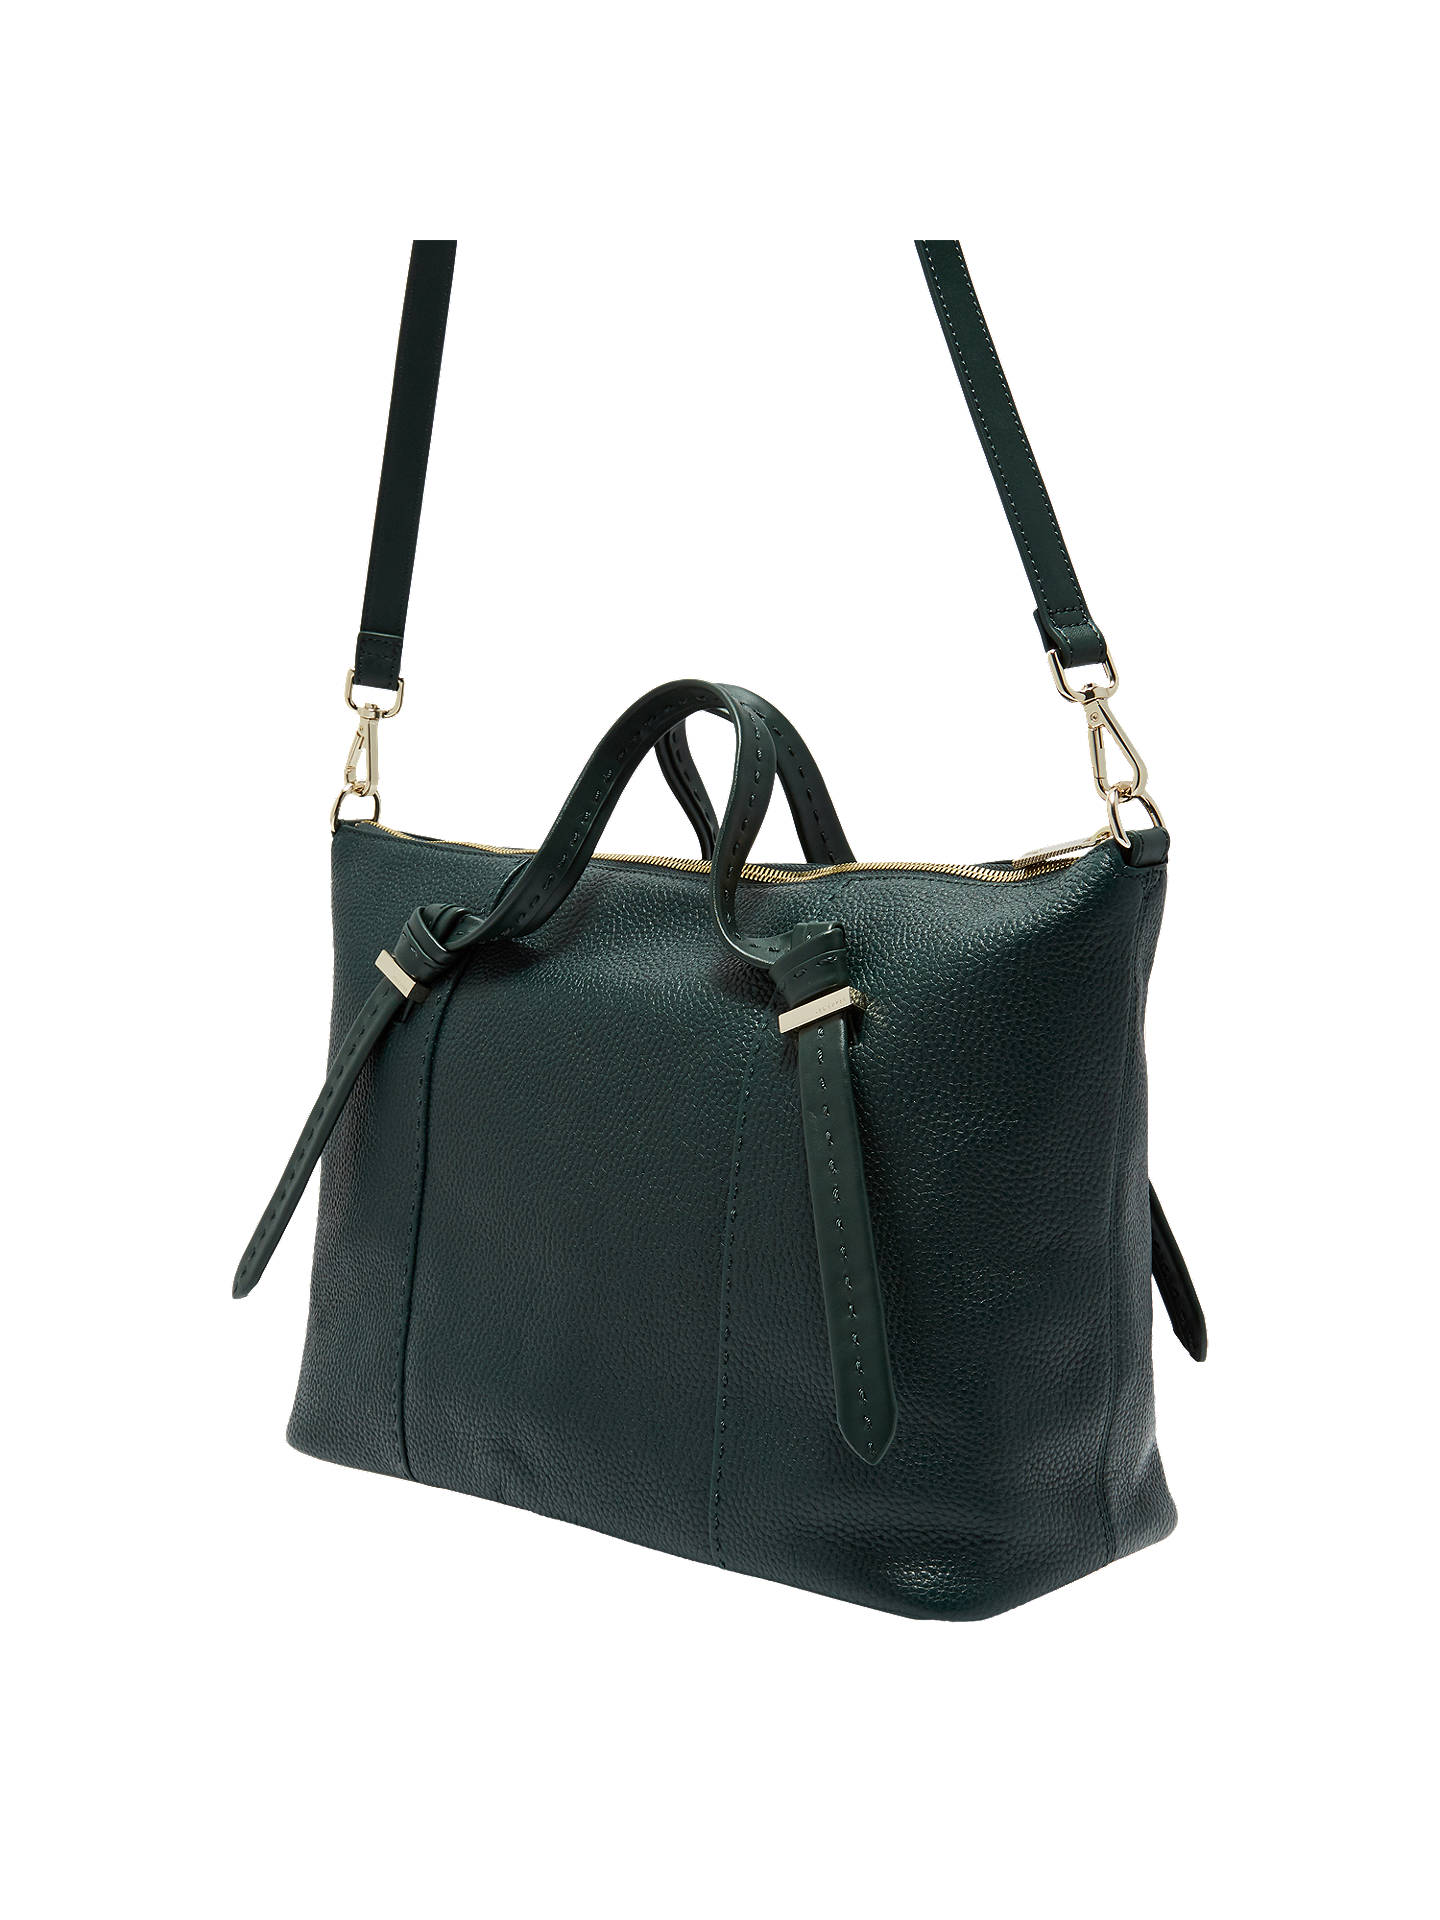 BuyTed Baker Oellie Knotted Handle Large Leather Tote Bag, Dark Green  Online at johnlewis. a055314acc